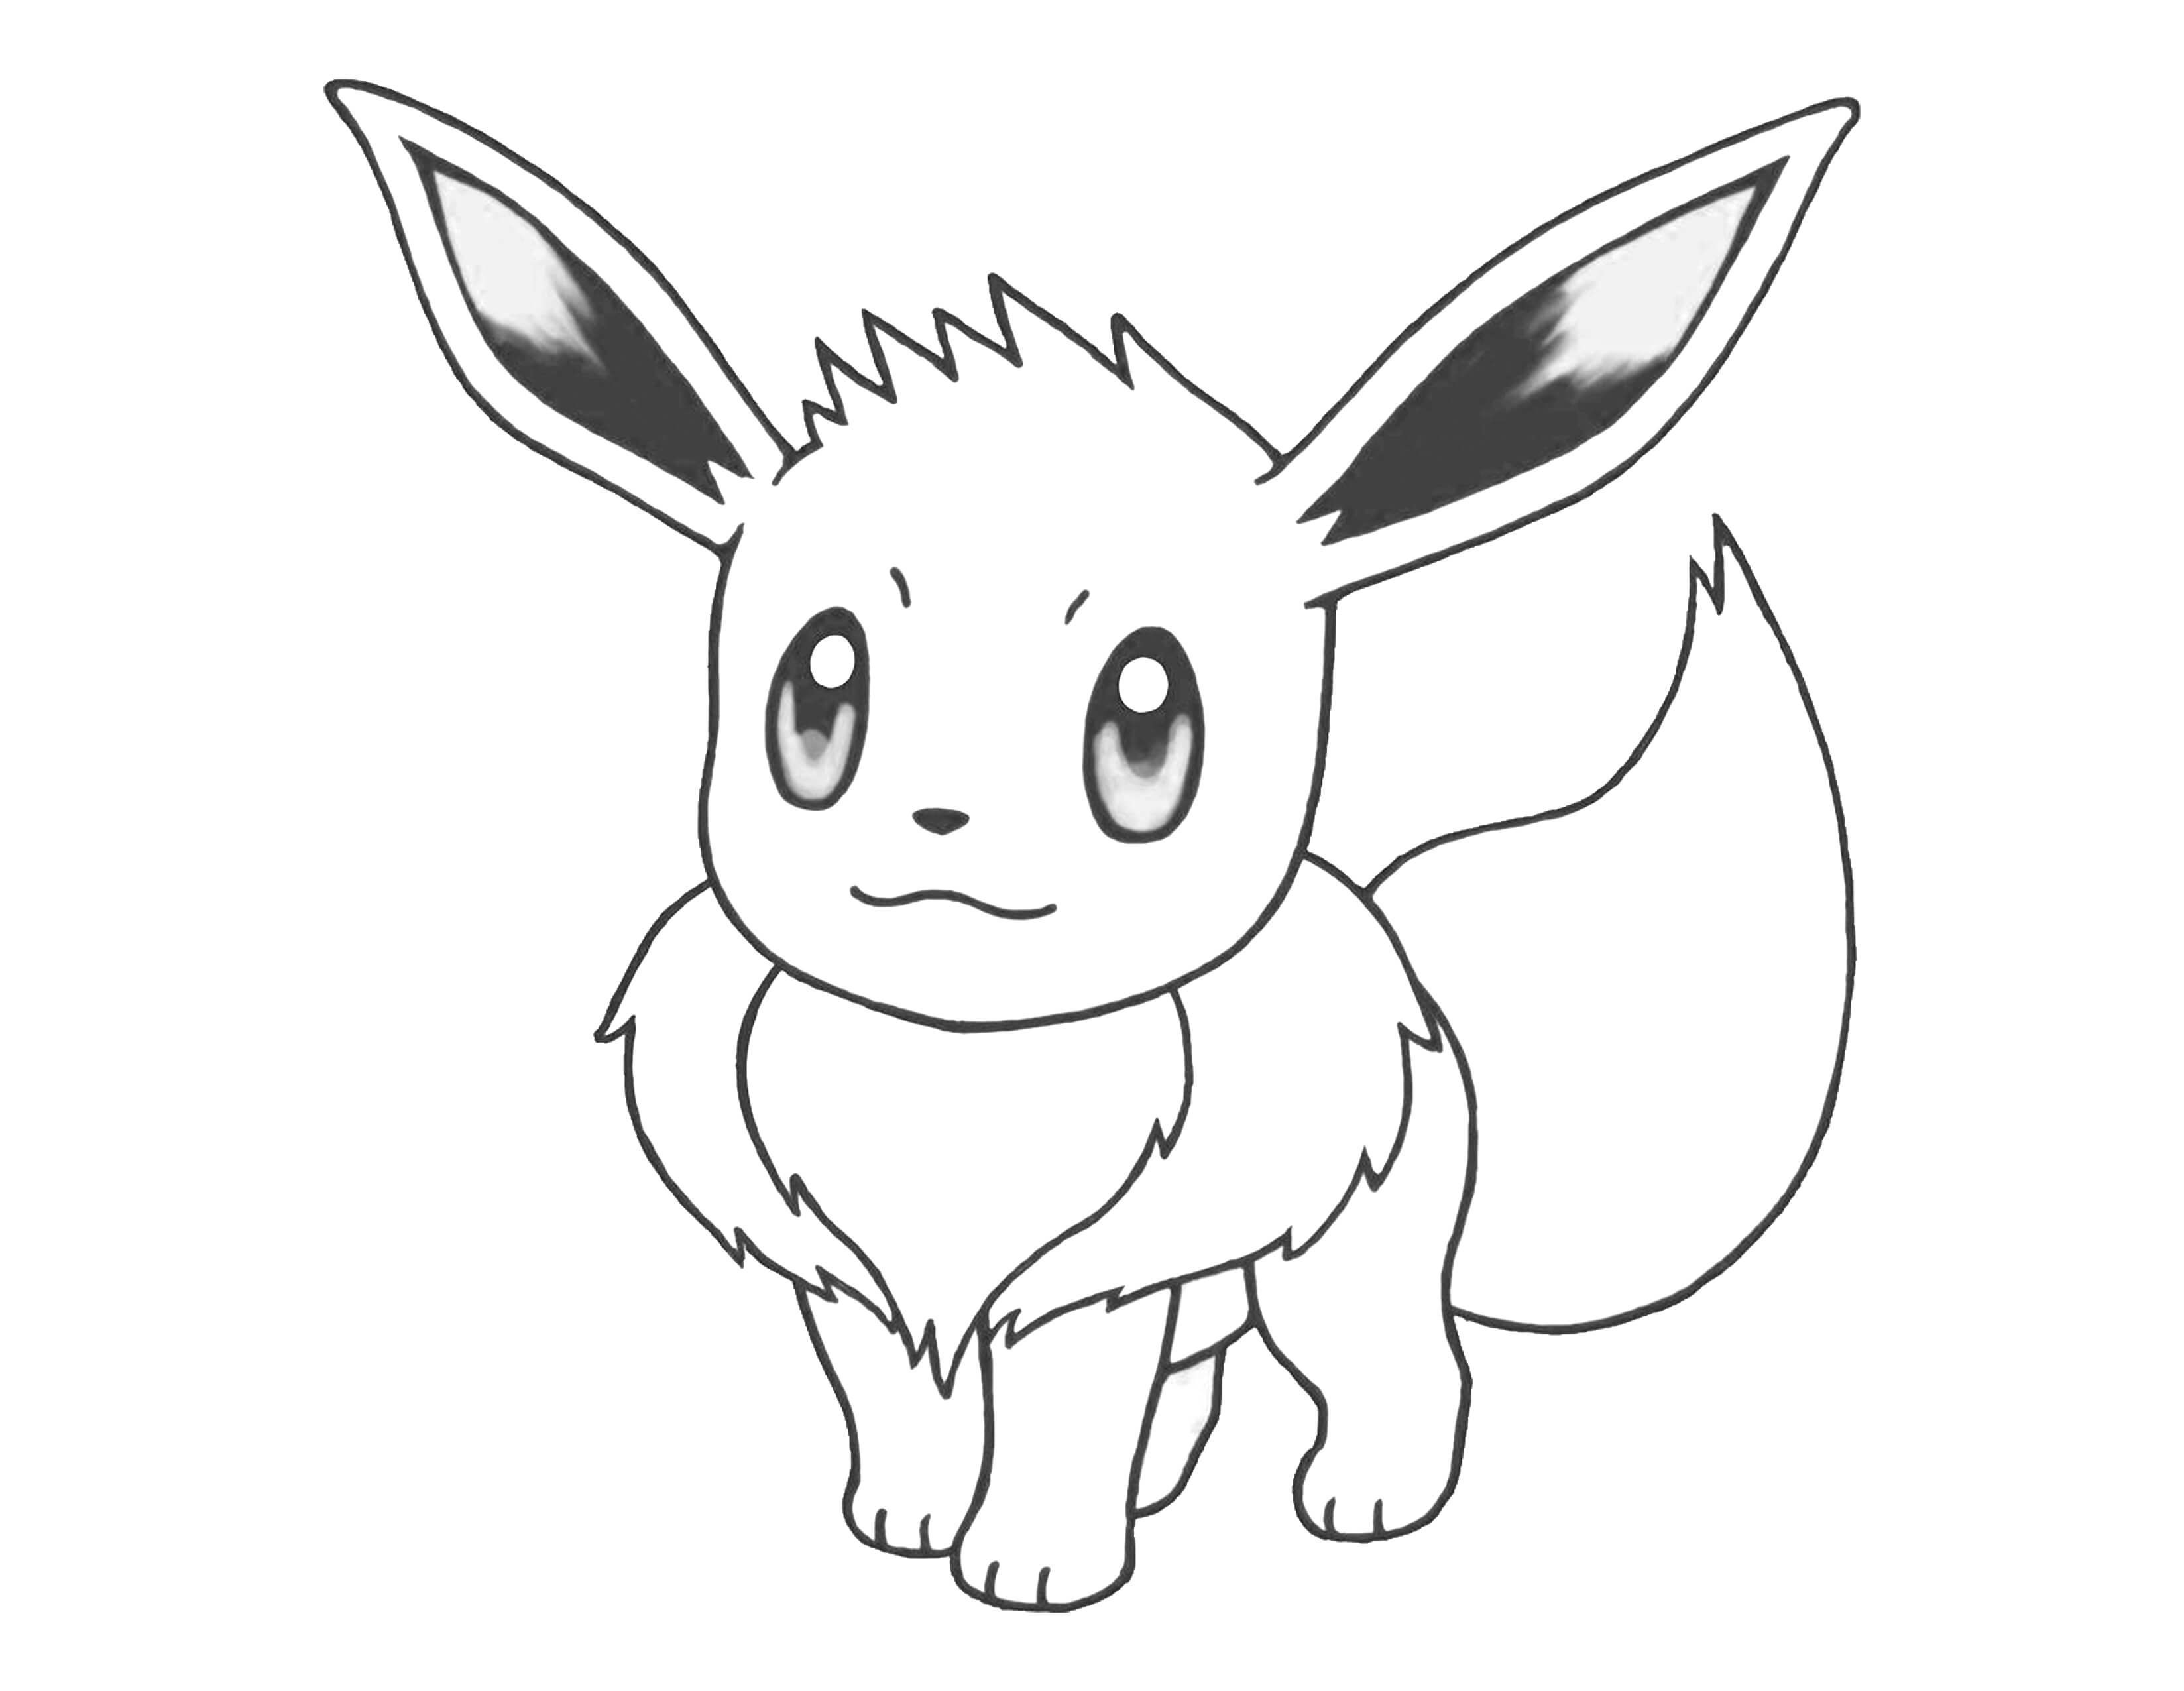 Pokemon Printable Coloring Pages » Coloring Pages Kids